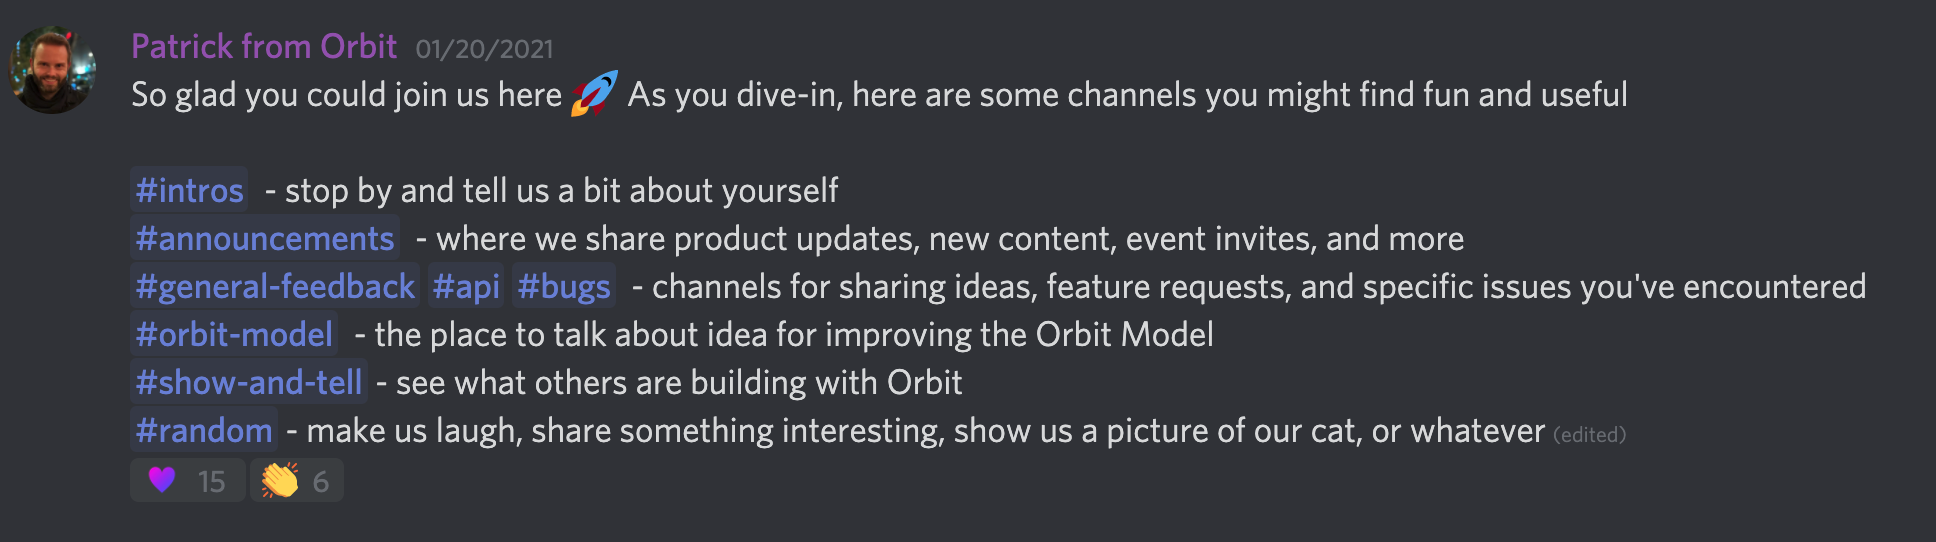 Screenshot of the Orbit Discord server welcome message